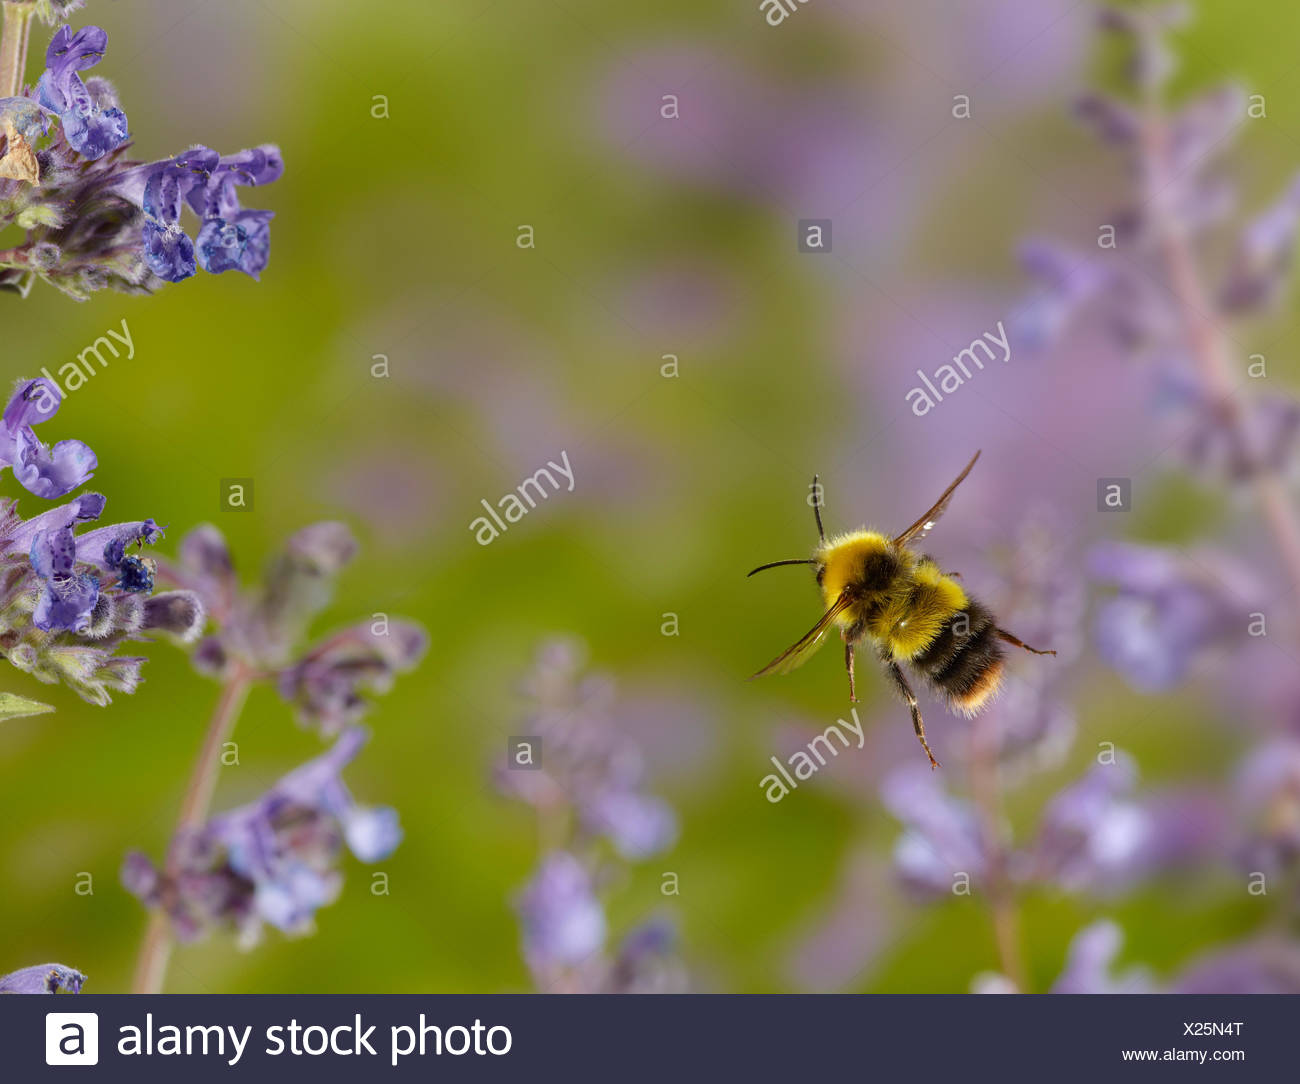 Early bumblebee (Bombus pratorum) in flight, controlled conditions. - Stock Image